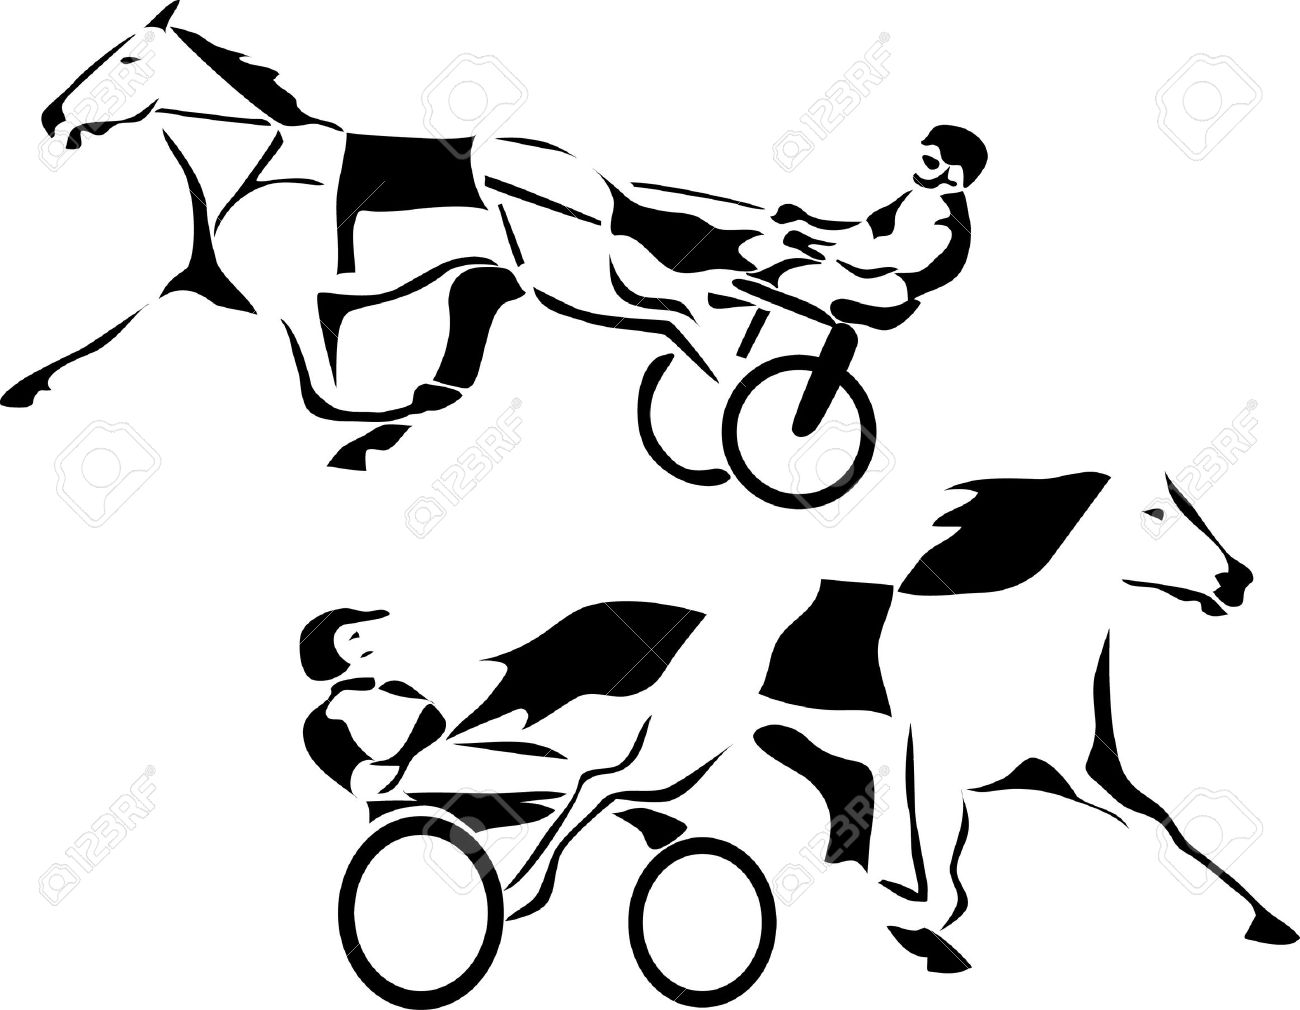 Harness Racing Royalty Free Cliparts, Vectors, And Stock ...